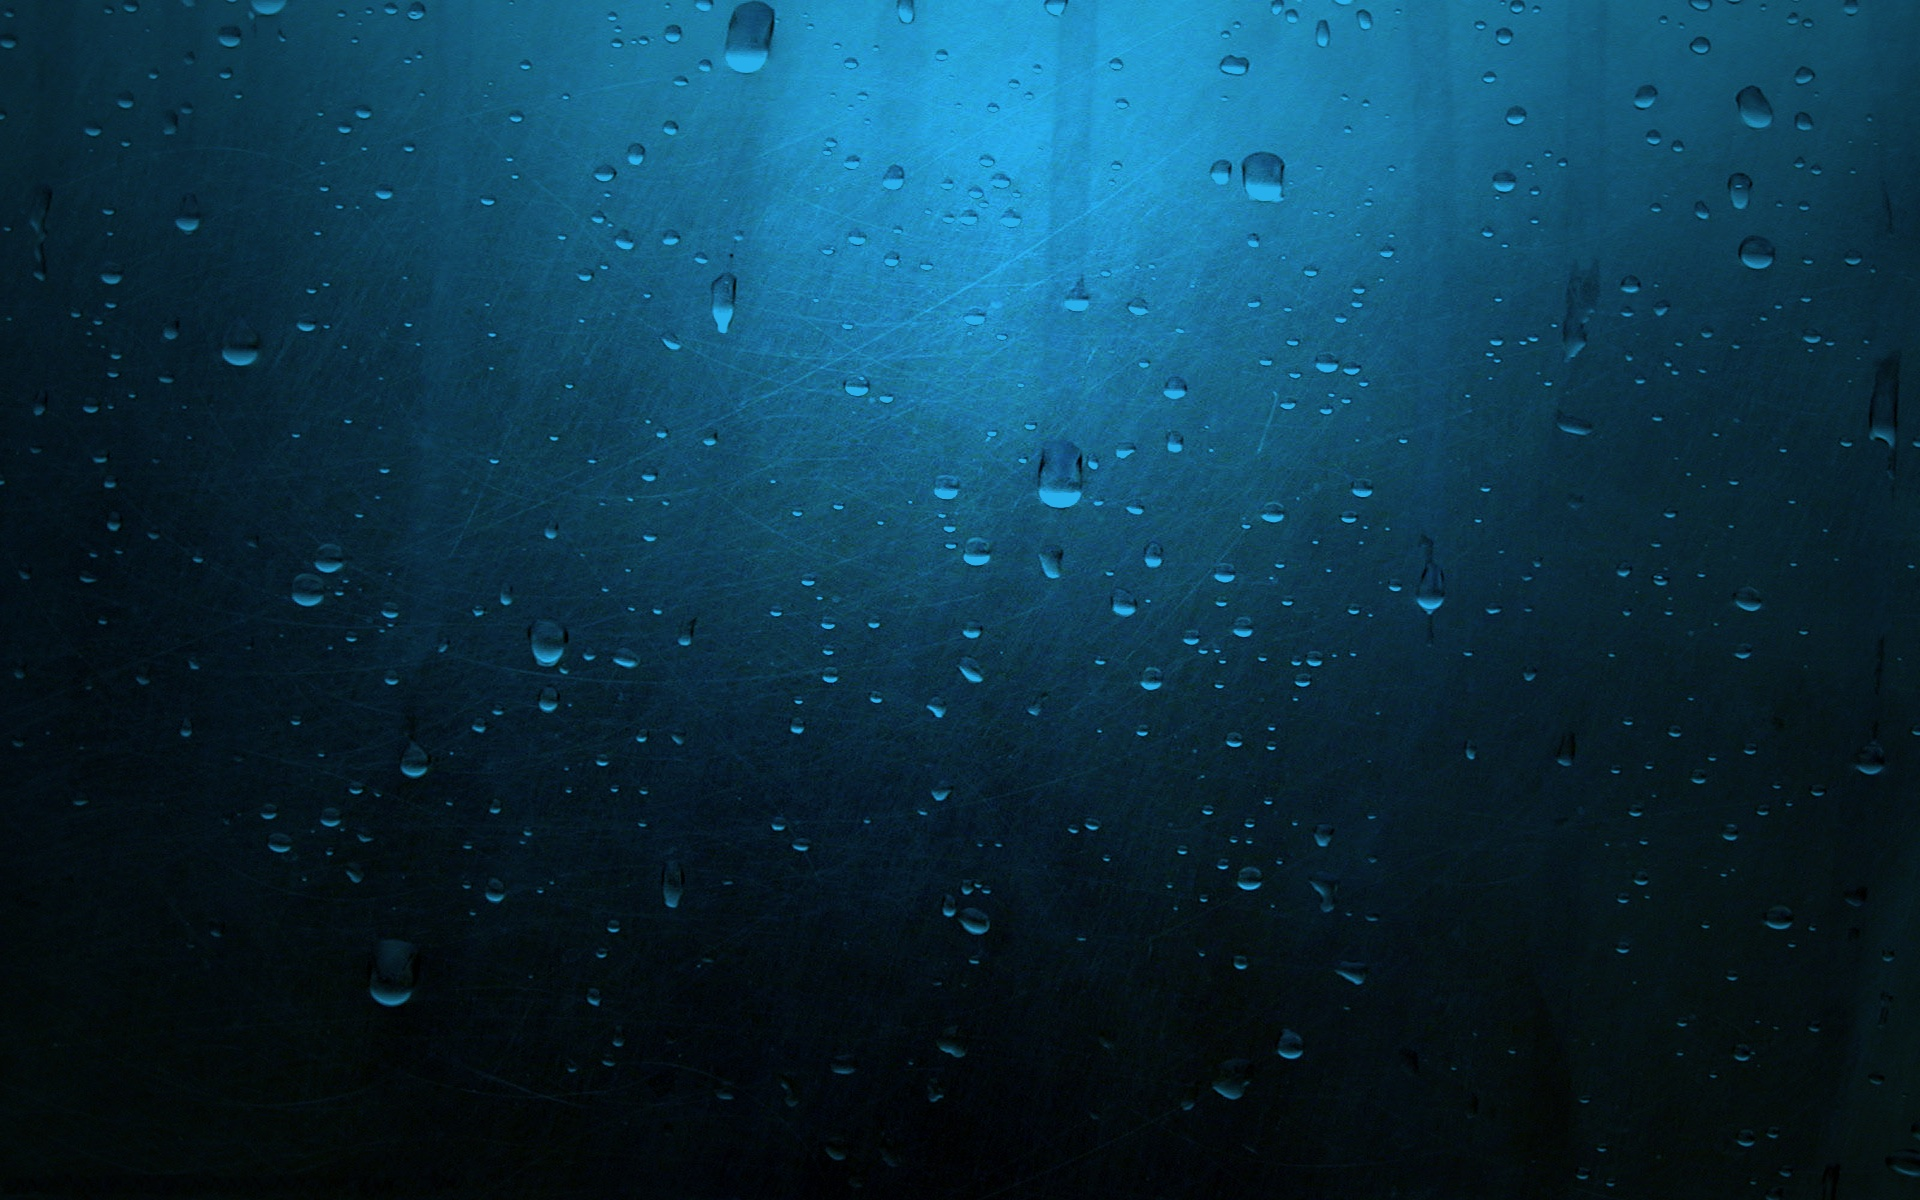 Drops Sliding Down the Glass Wallpapers 421.09 Kb